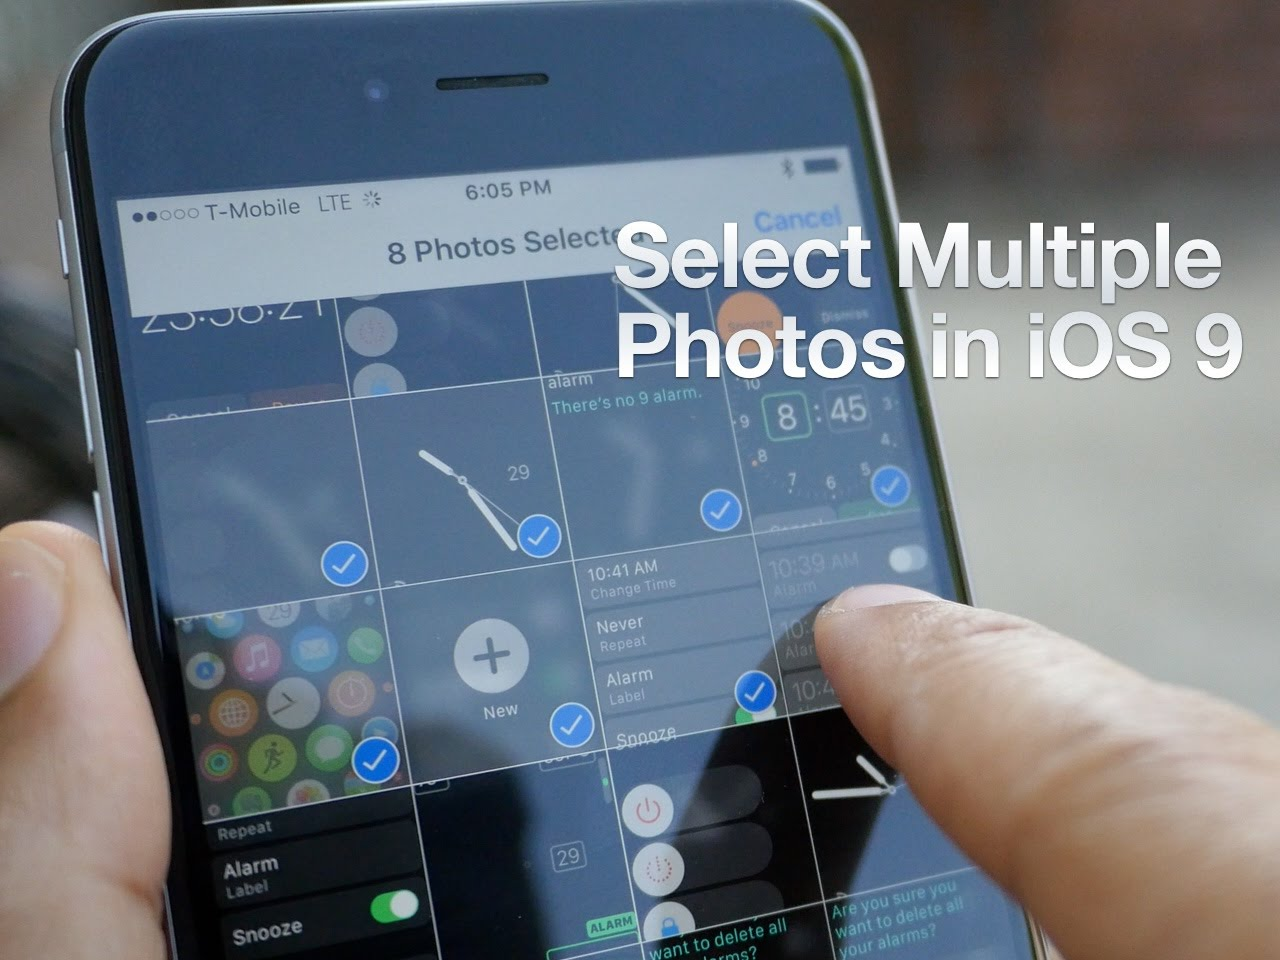 How to quickly select multiple photos in iOS 9